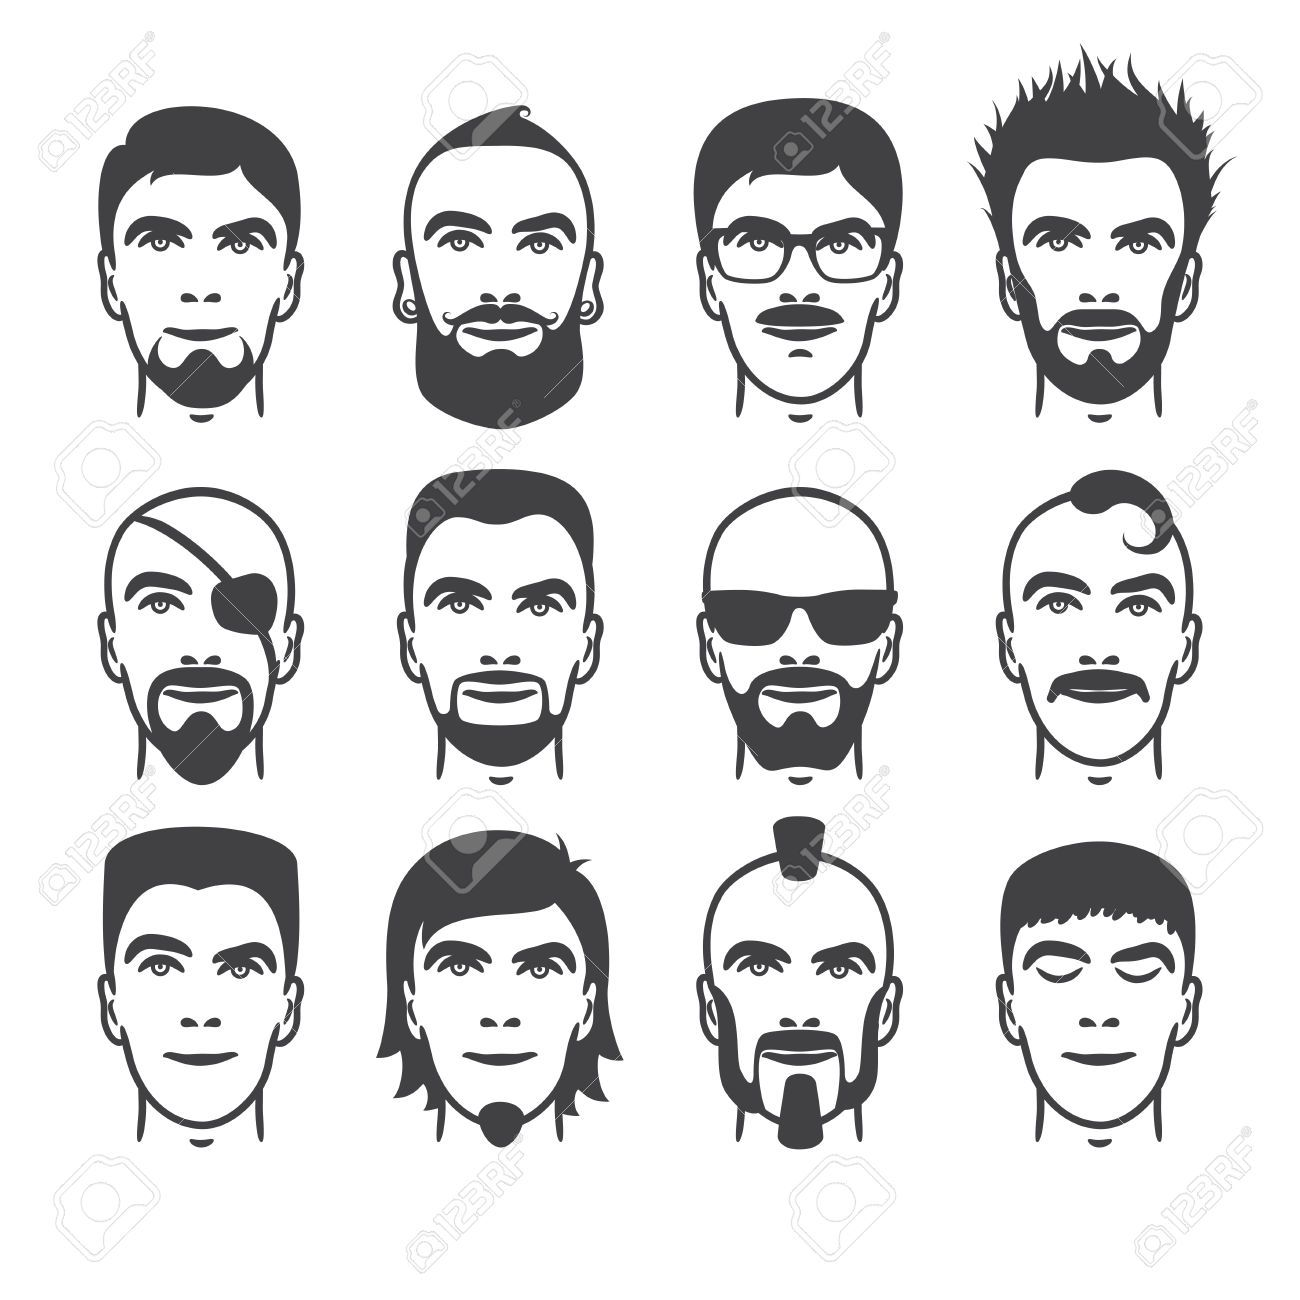 Comic Drawing Man Beard Face Google Search Cartoon Face - Different hair style drawing